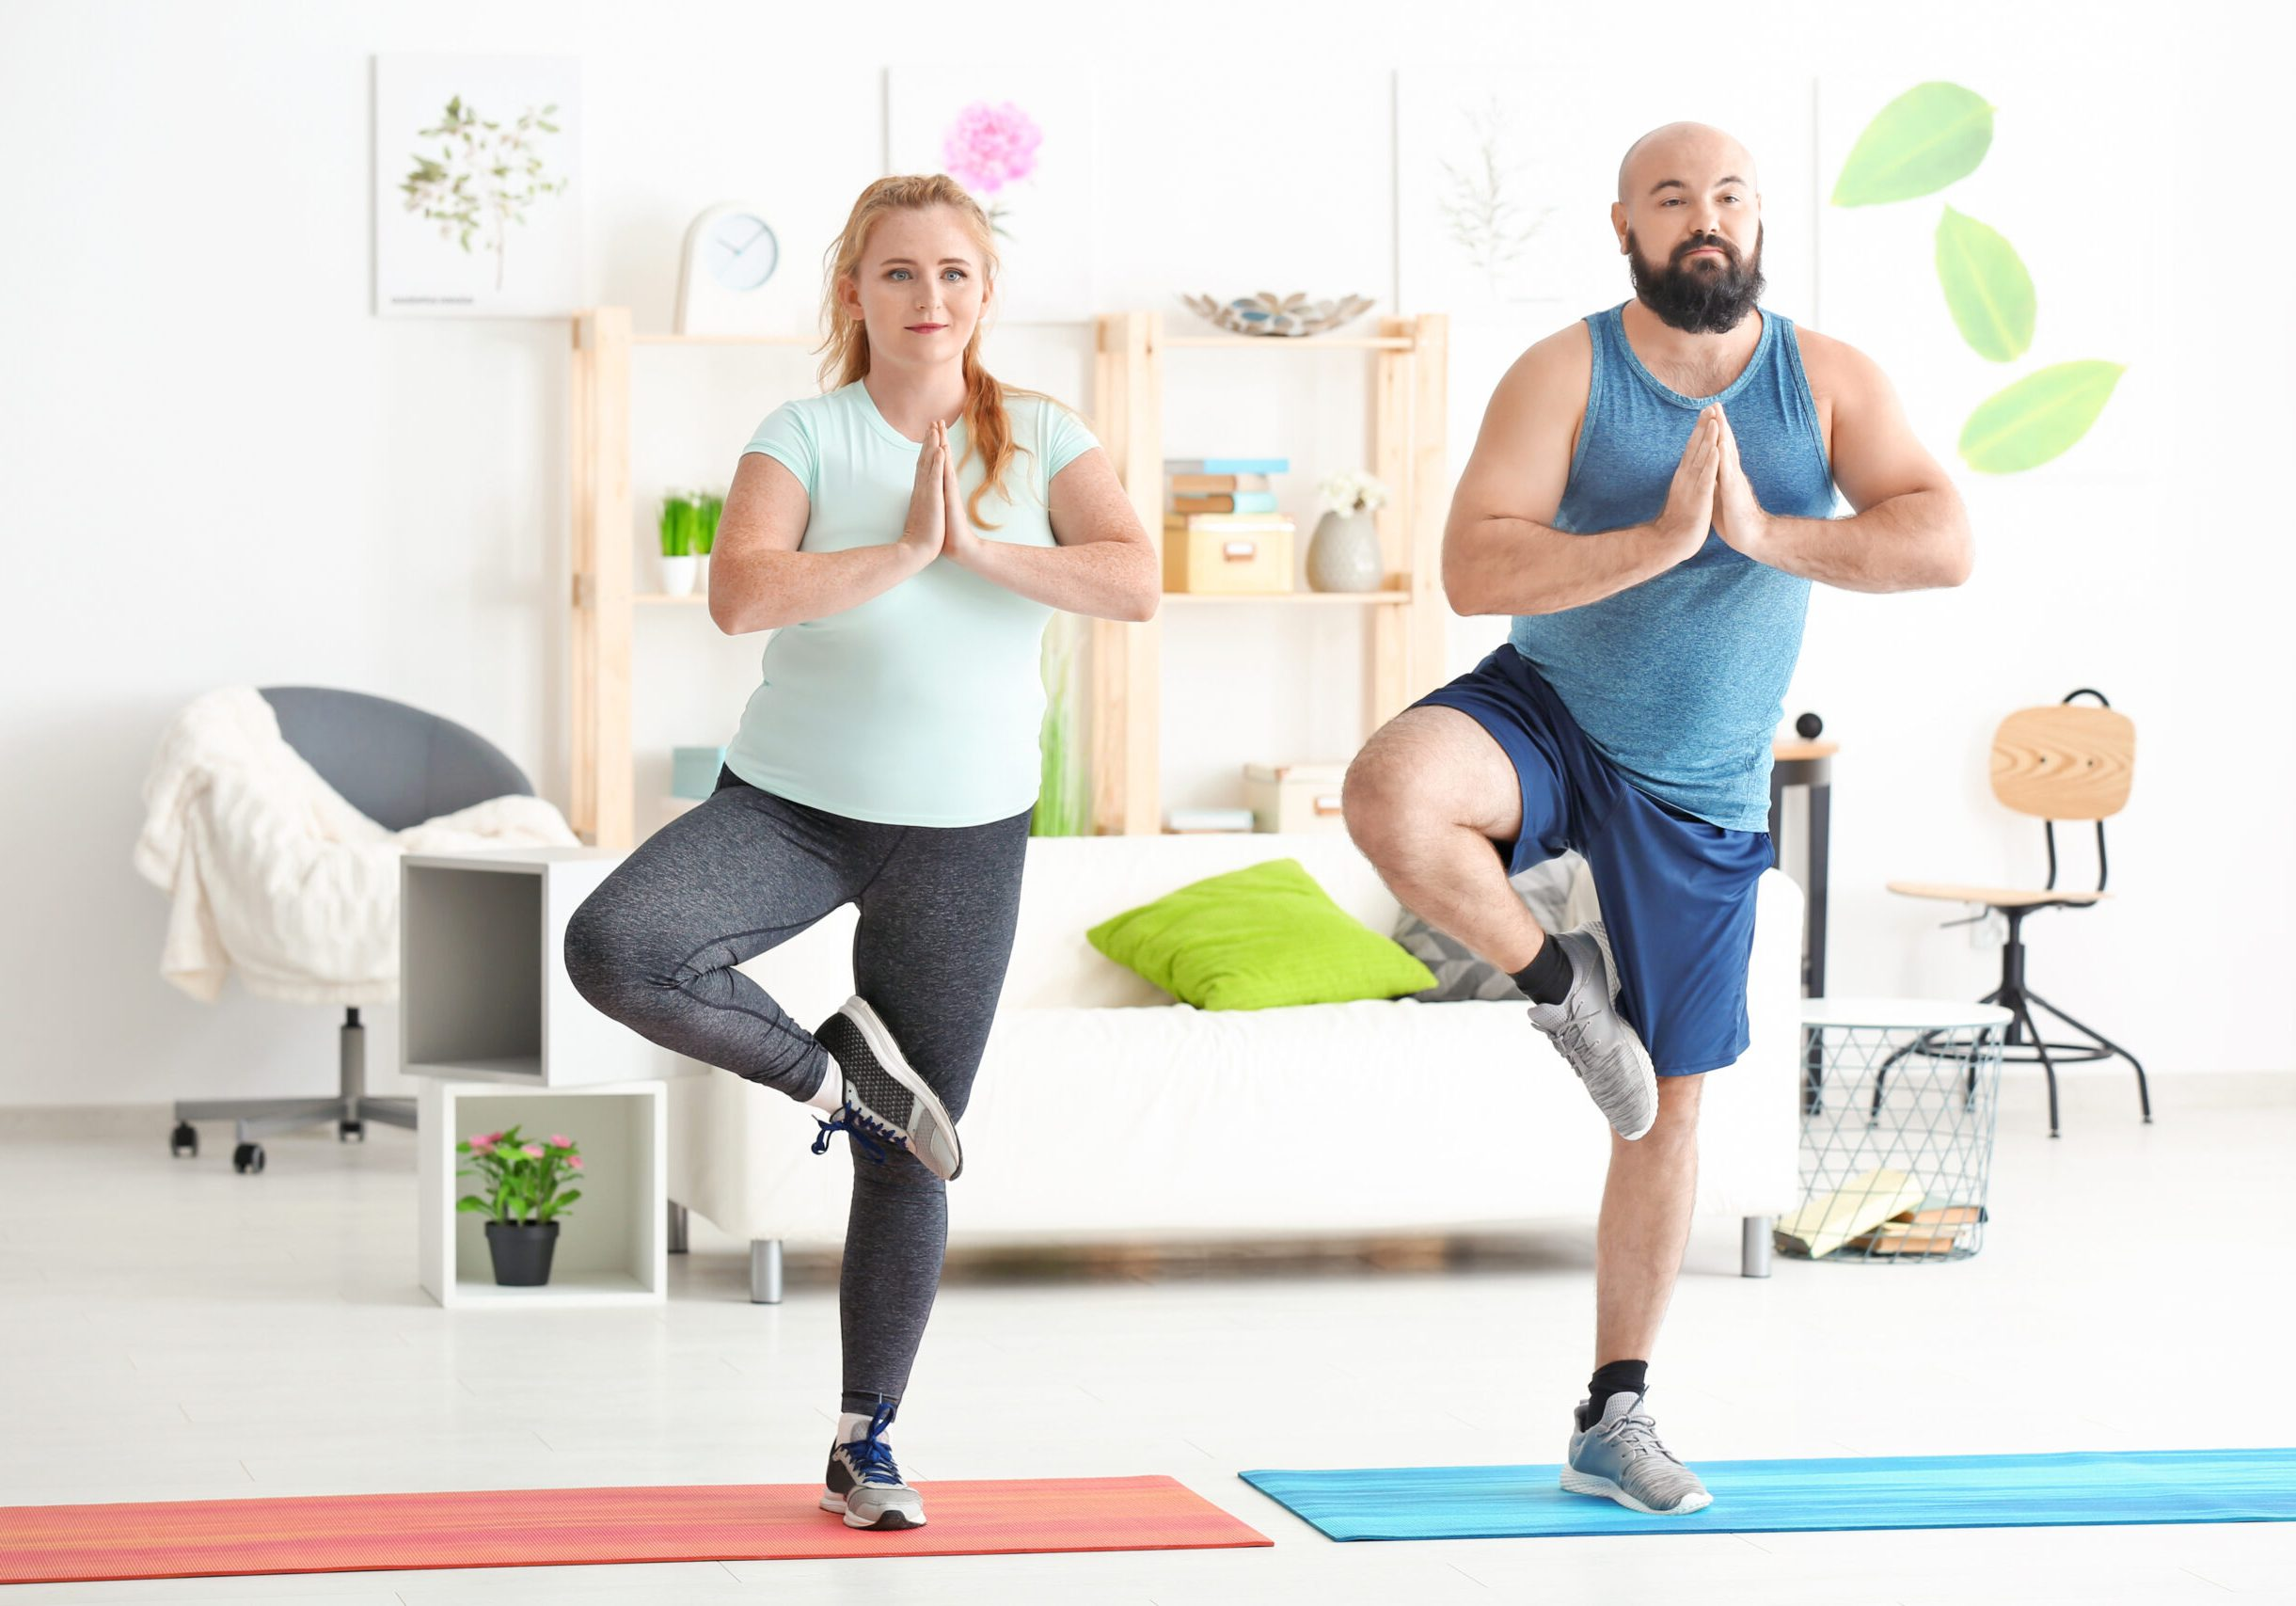 Overweight couple doing exercises at home